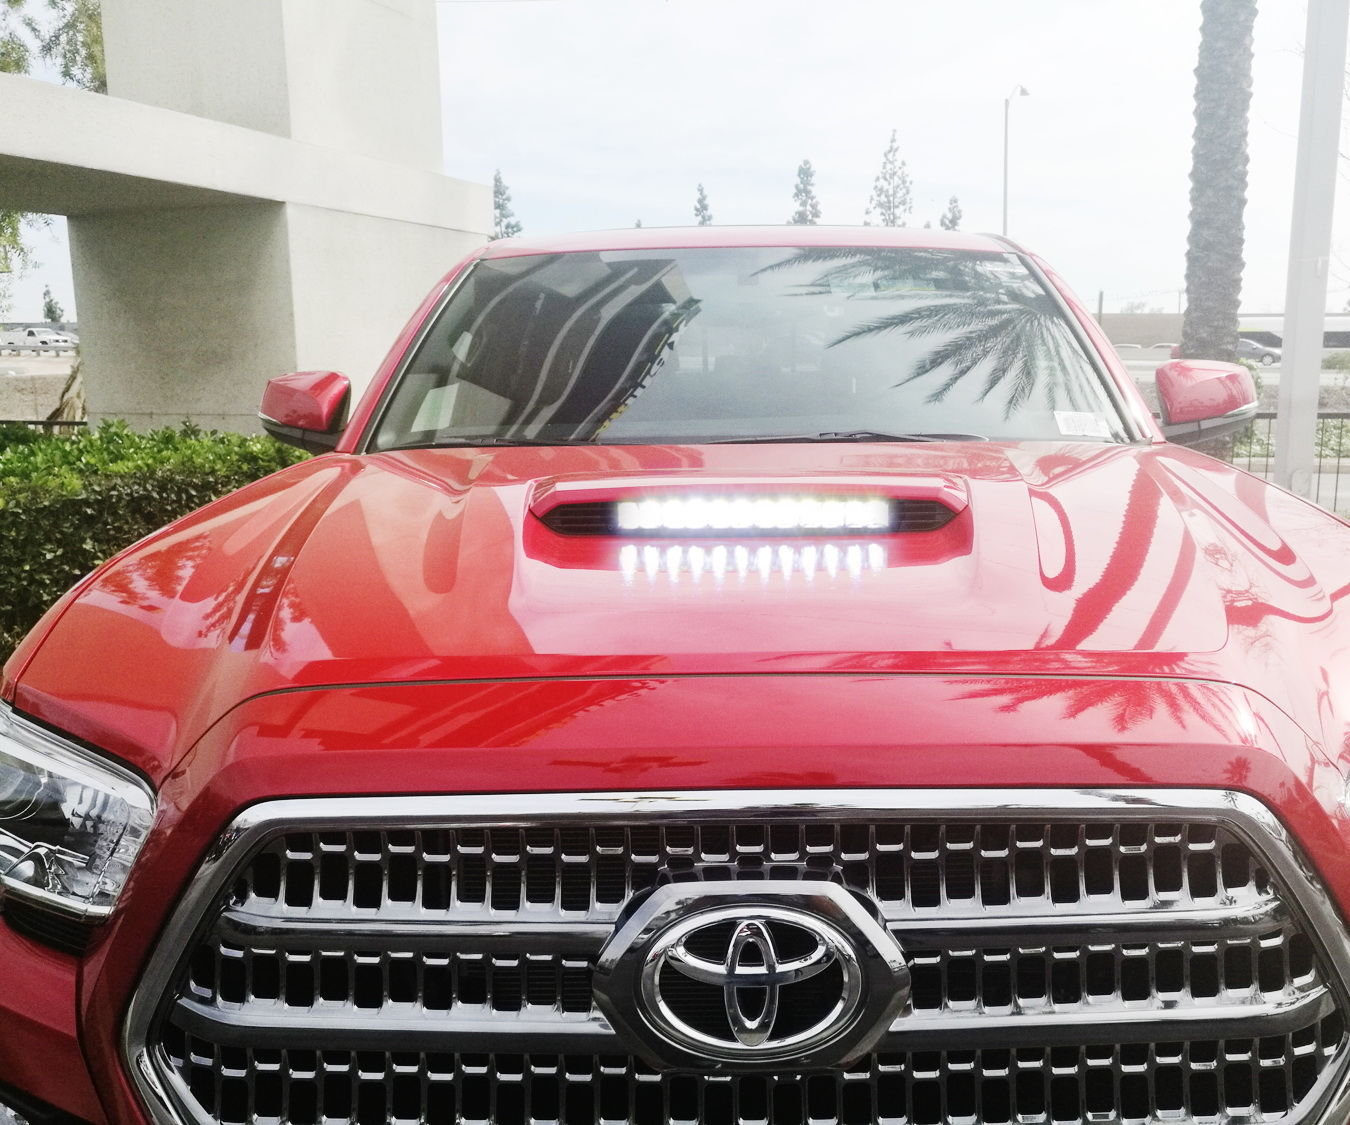 60W LED Lightbar for 2016-up Toyota Tacoma Install Guide